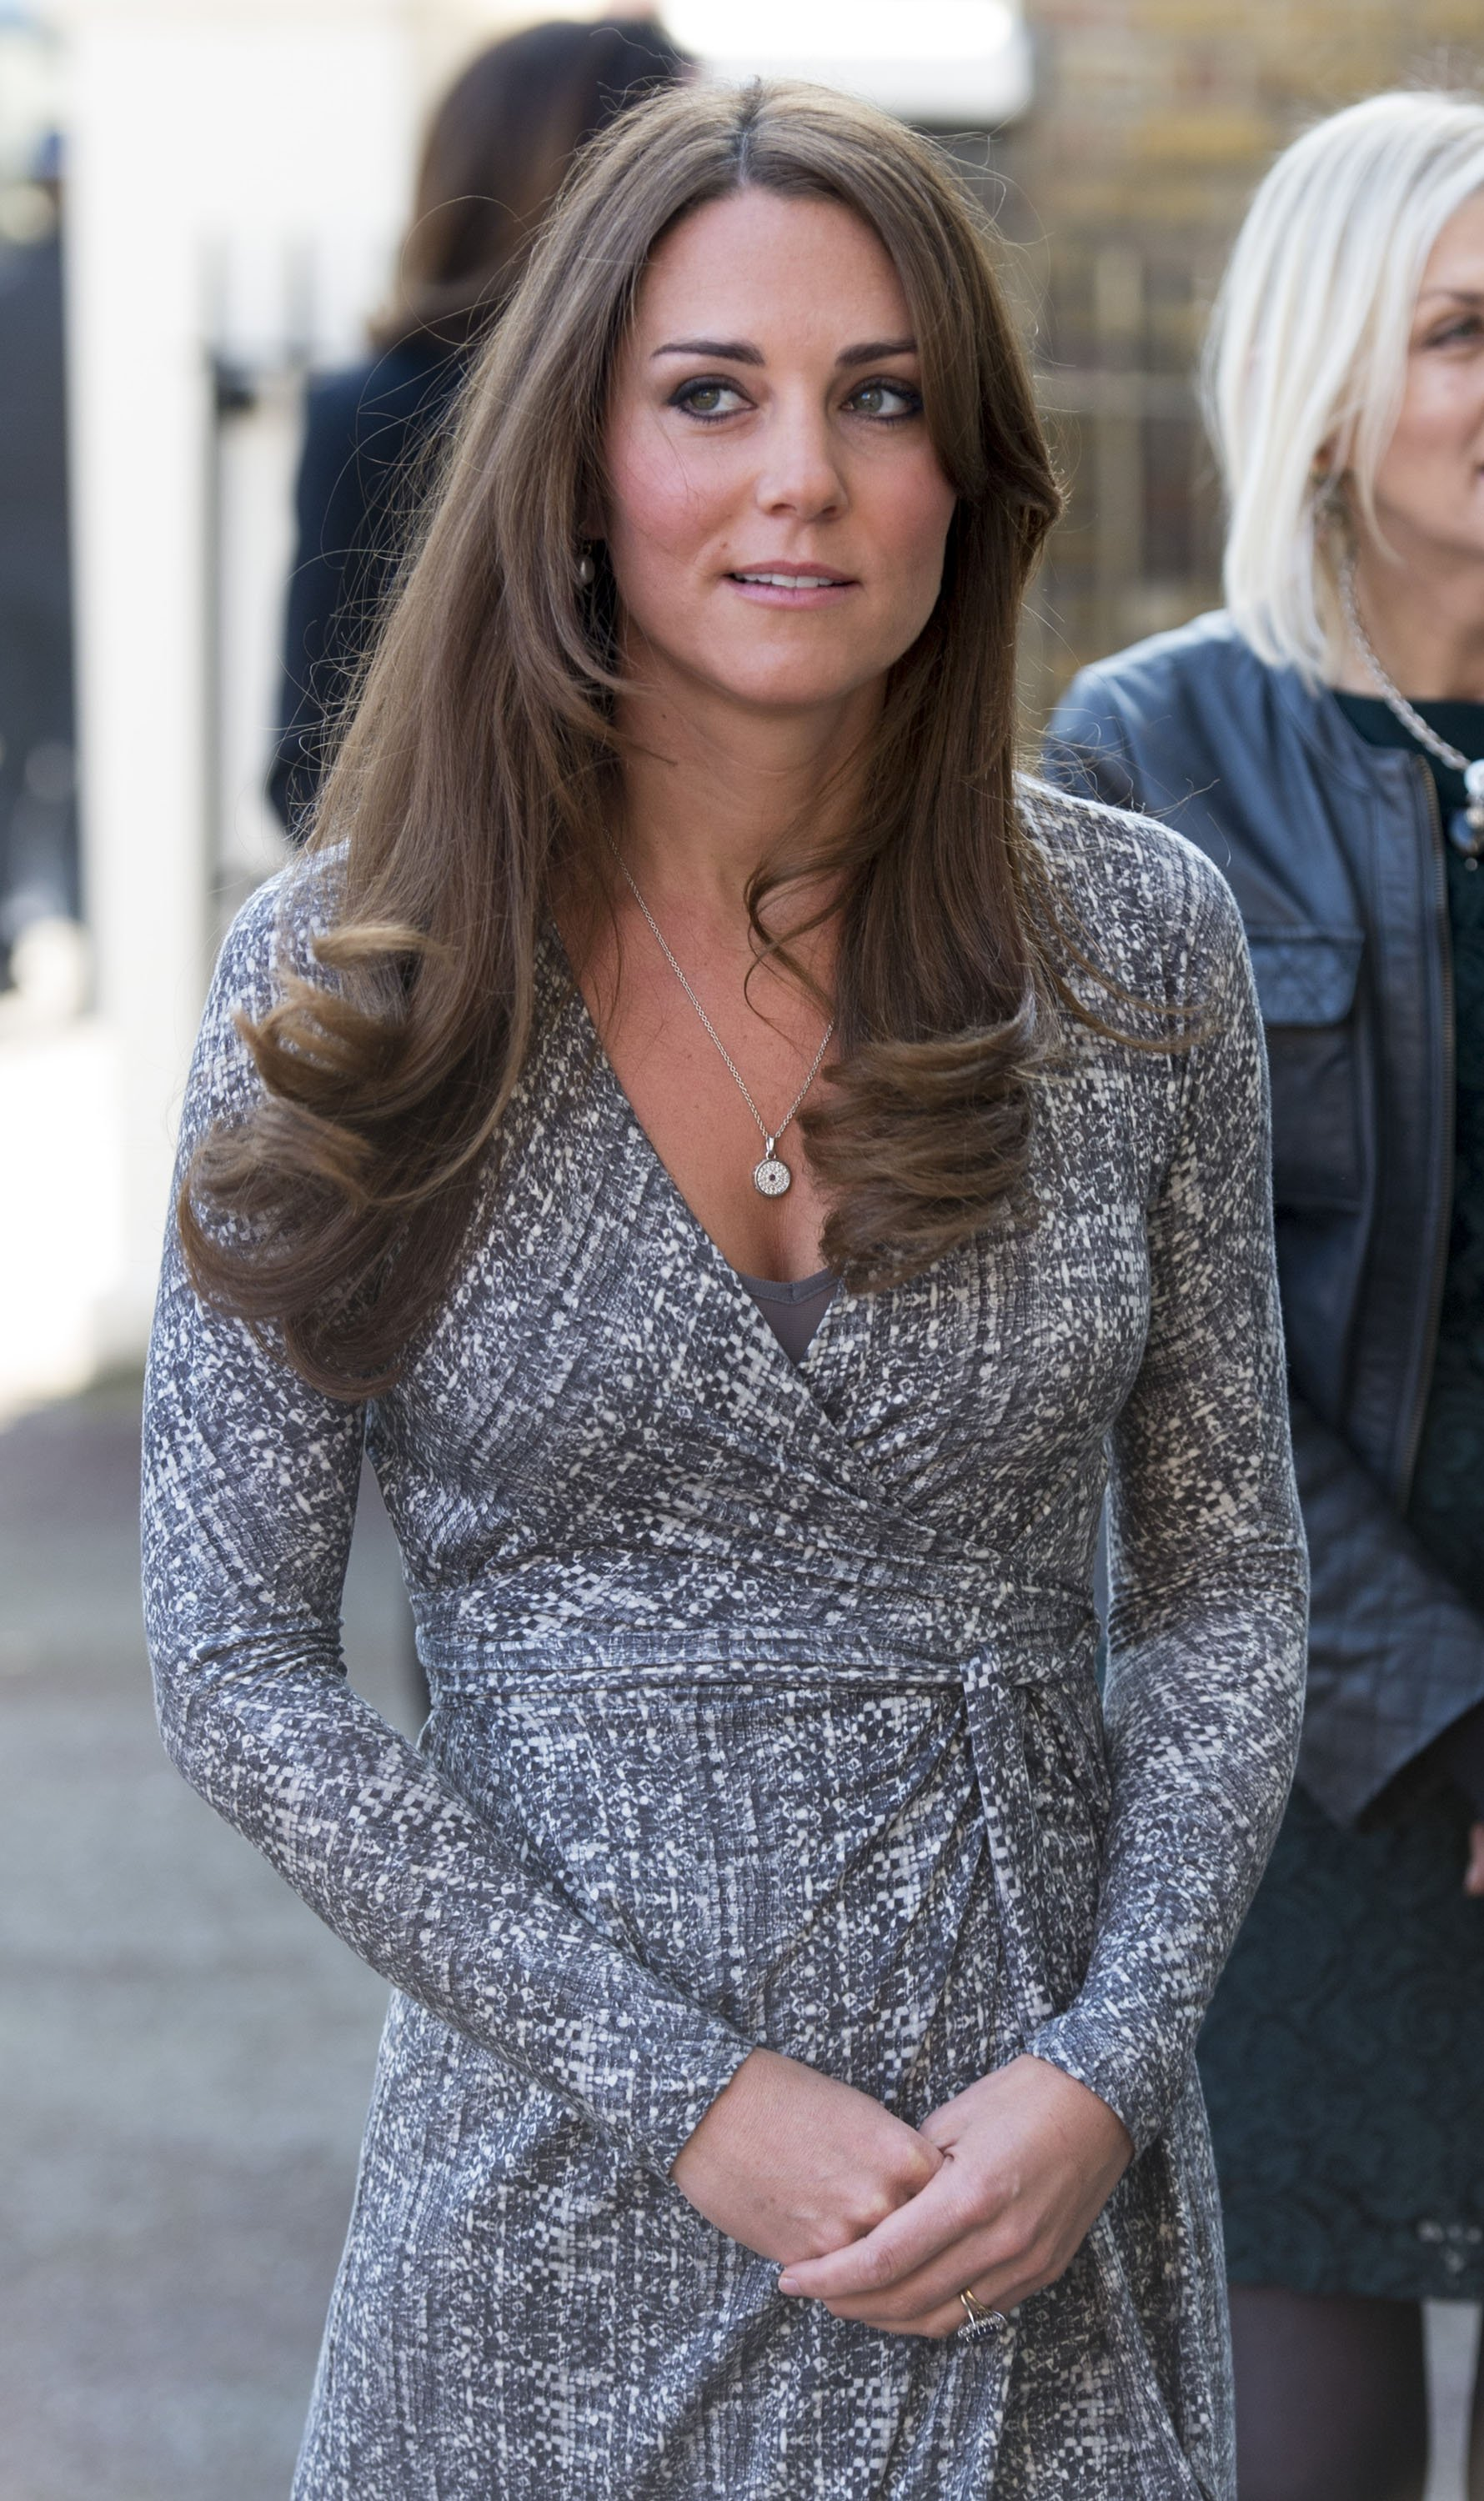 Kate Middleton on February 19, 2013 in London, England | Photo: Getty Images